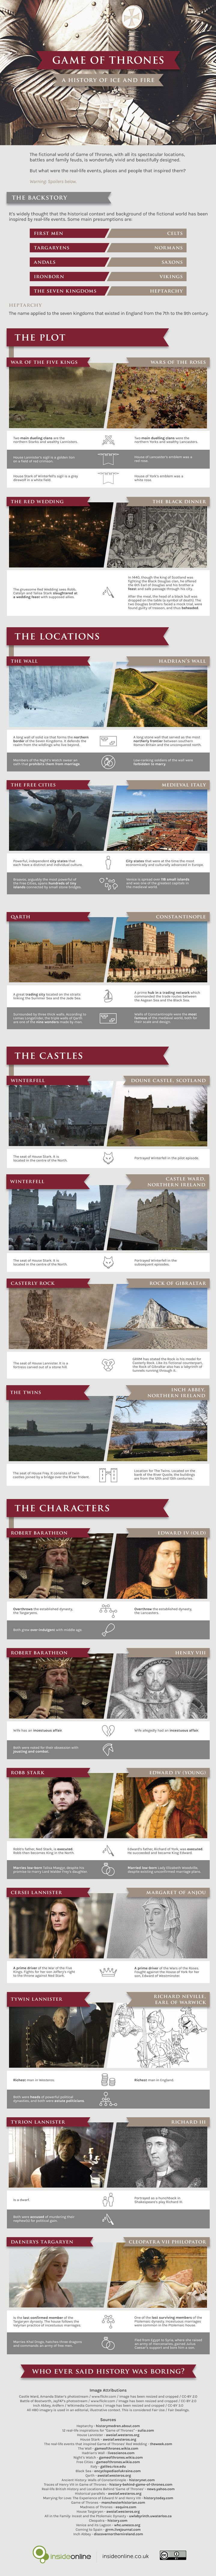 """Game of Thrones: A History of Ice and Fire - """"The fictional world of Game of Thrones, with all its spectacular locations, battles, and family feuds, is wonderfully vivid and beautifully designed. But what real life events, places, and people [possibly] inspired them?"""""""